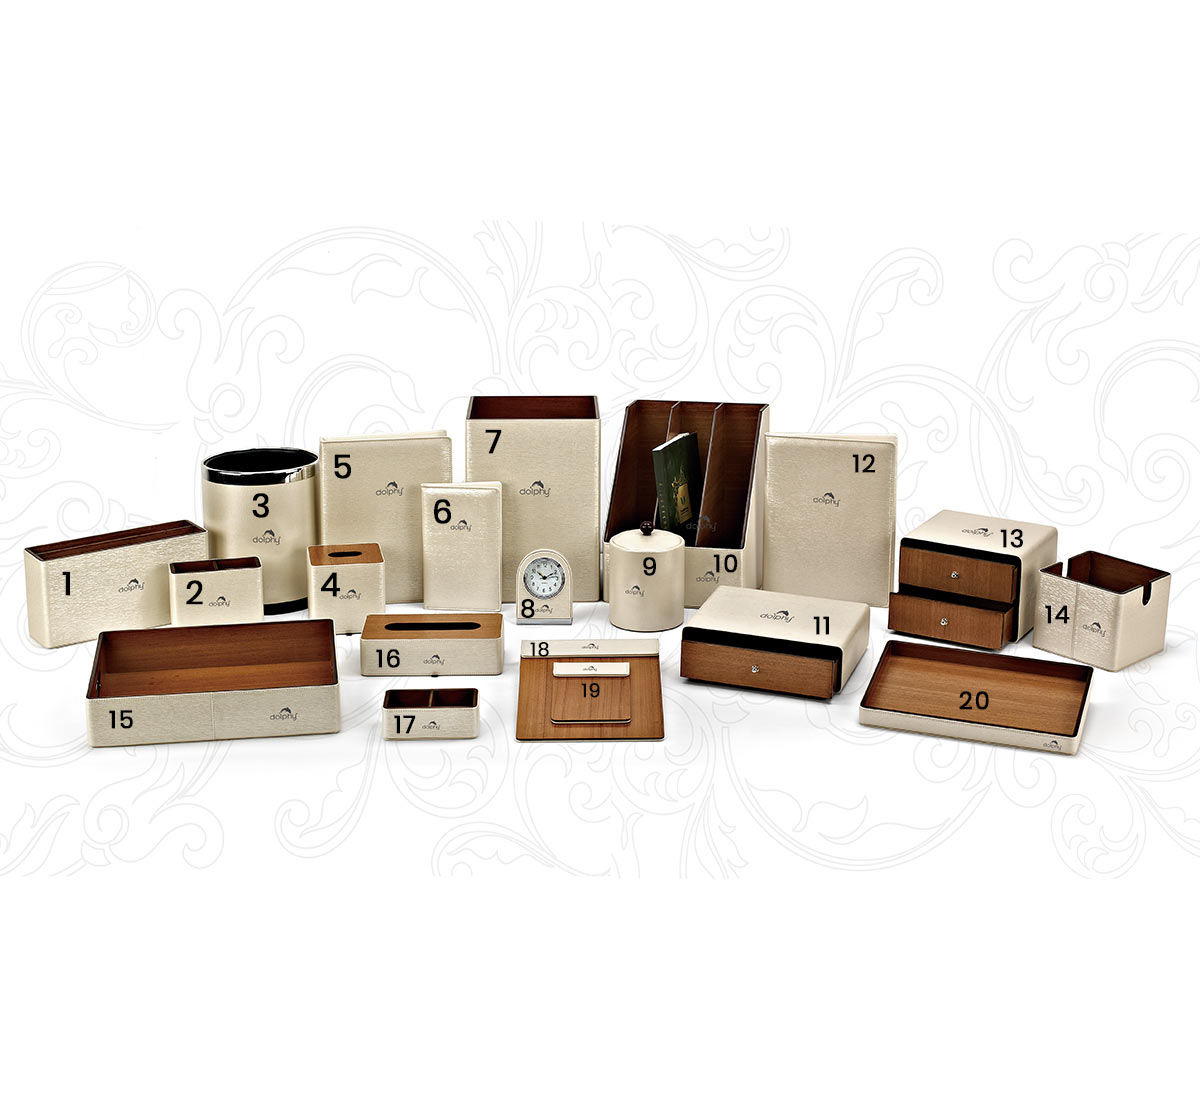 Hotel room leather accessories set